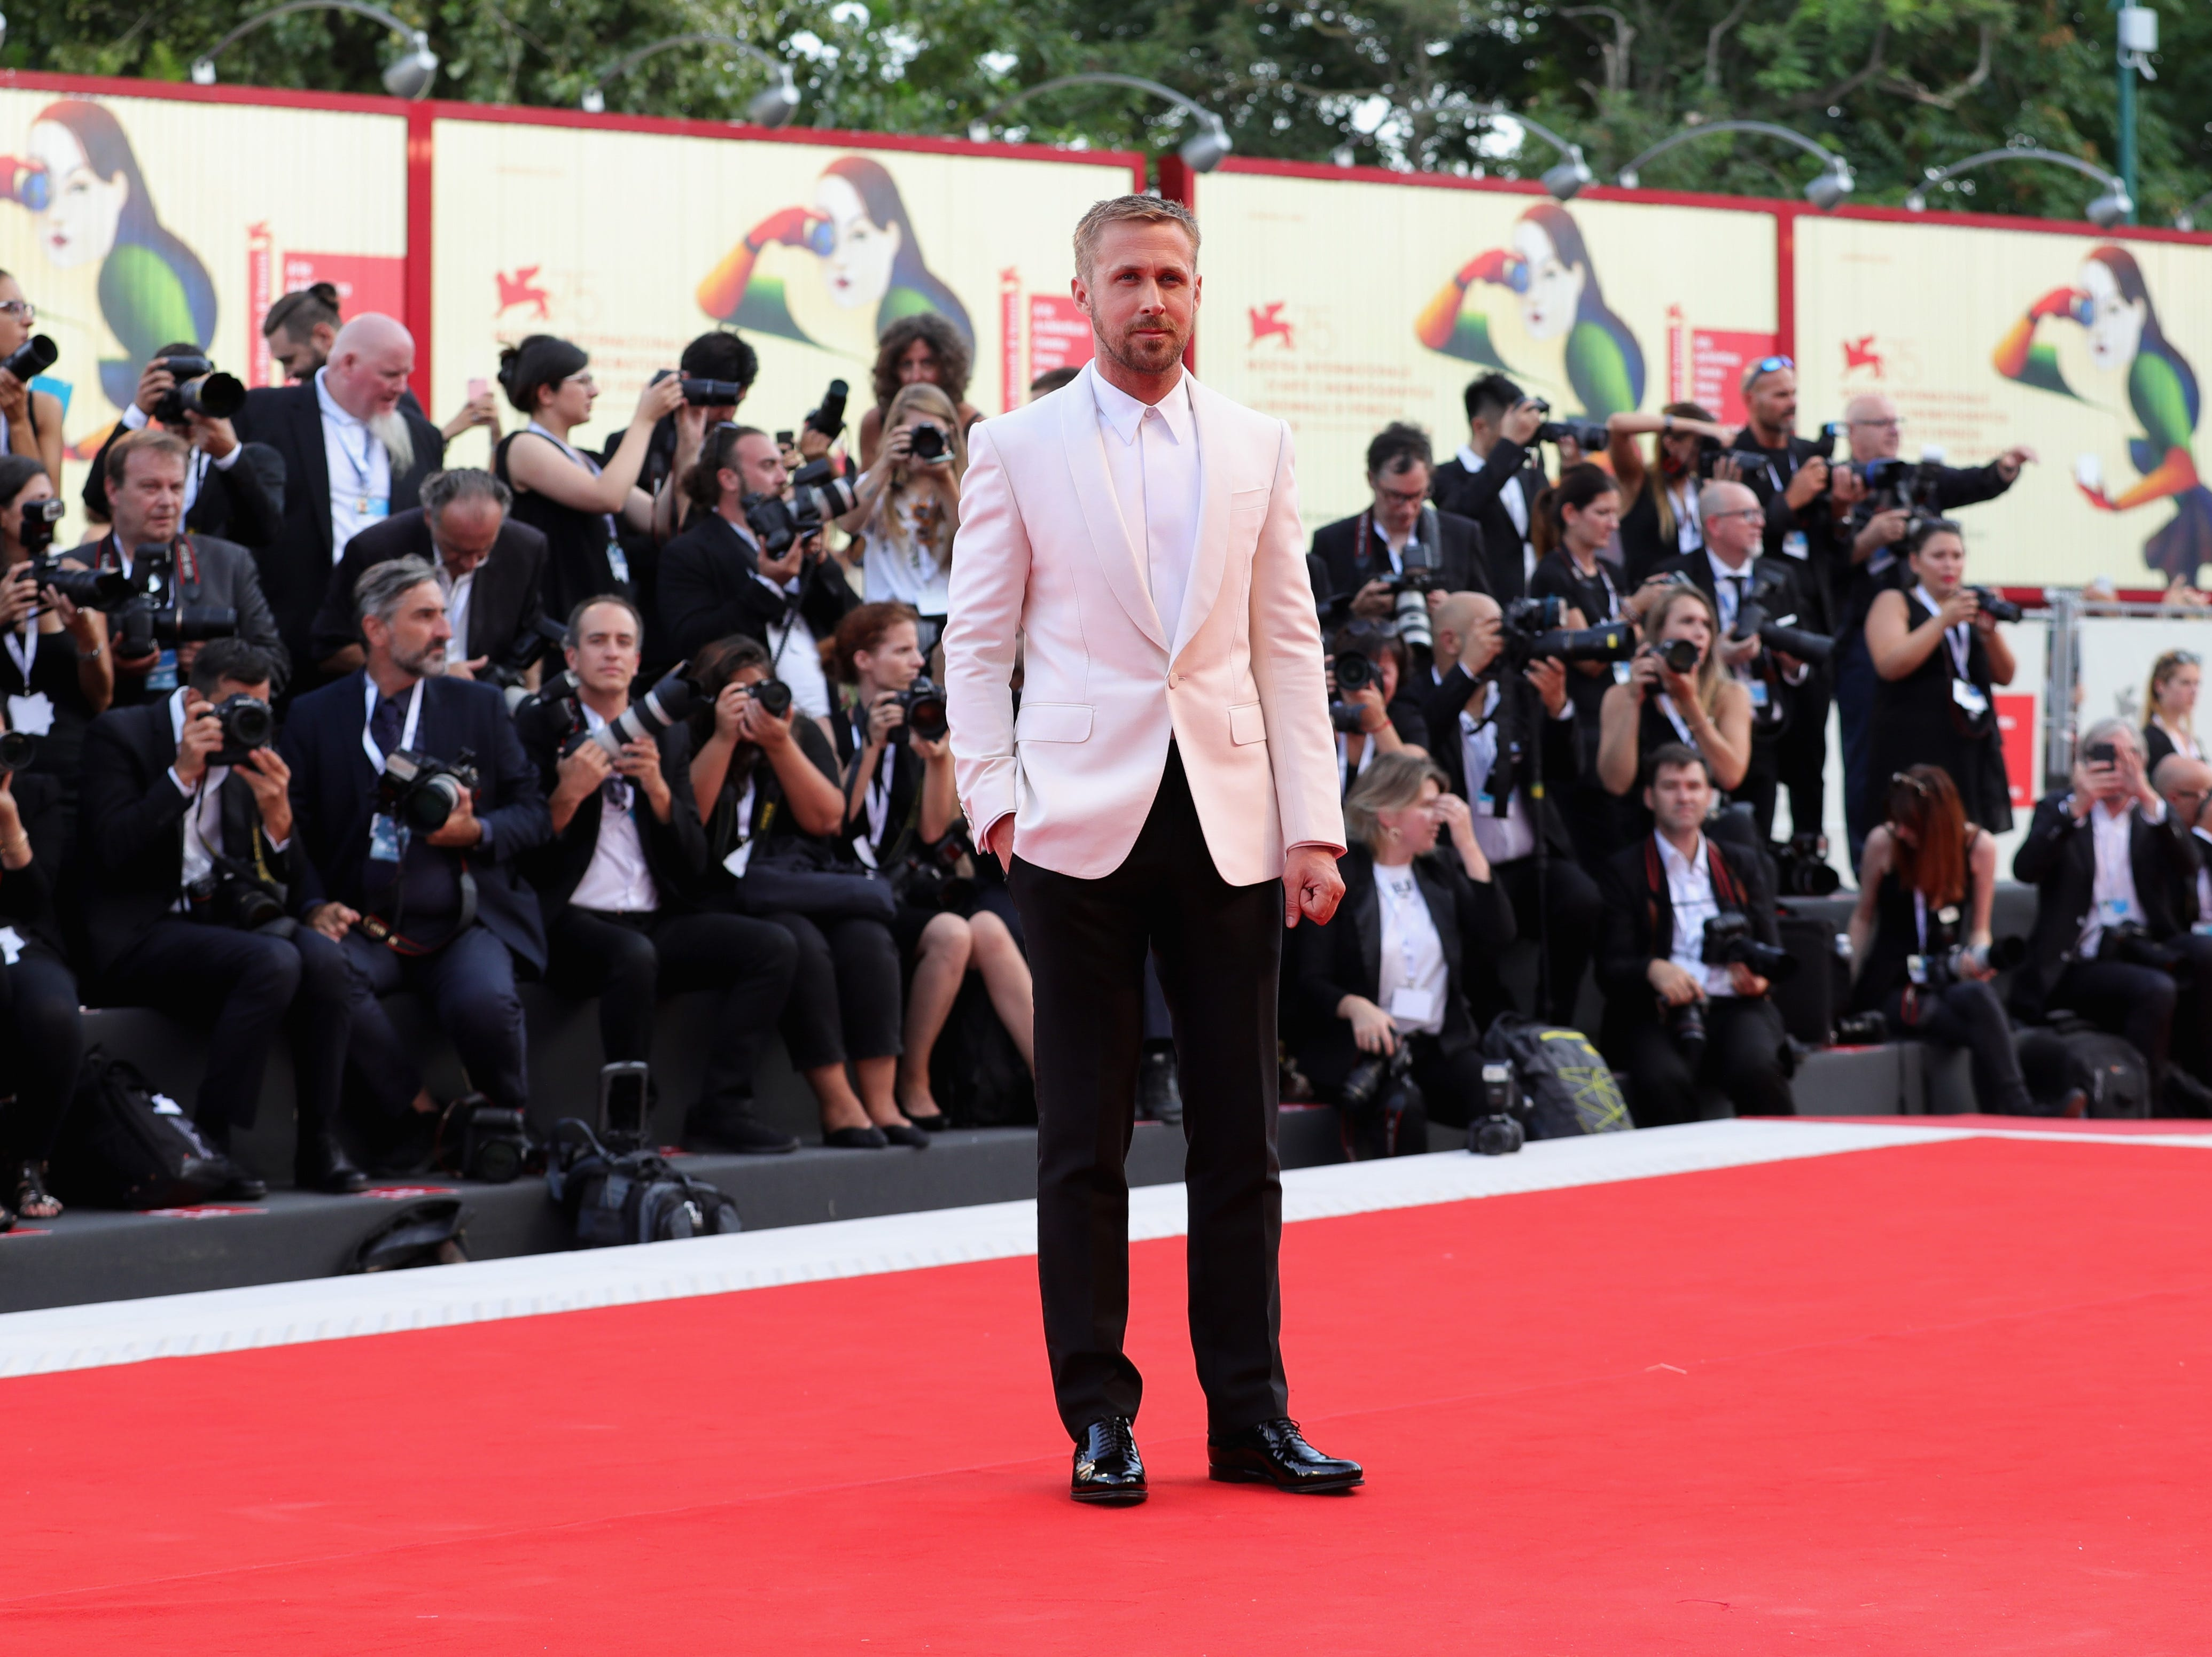 VENICE, ITALY - AUGUST 29:  Ryan Gosling walks the red carpet ahead of the opening ceremony and the 'First Man' screening during the 75th Venice Film Festival at Sala Grande on August 29, 2018 in Venice, Italy.  (Photo by Vittorio Zunino Celotto/Getty Images) ORG XMIT: 775200608 ORIG FILE ID: 1025027322